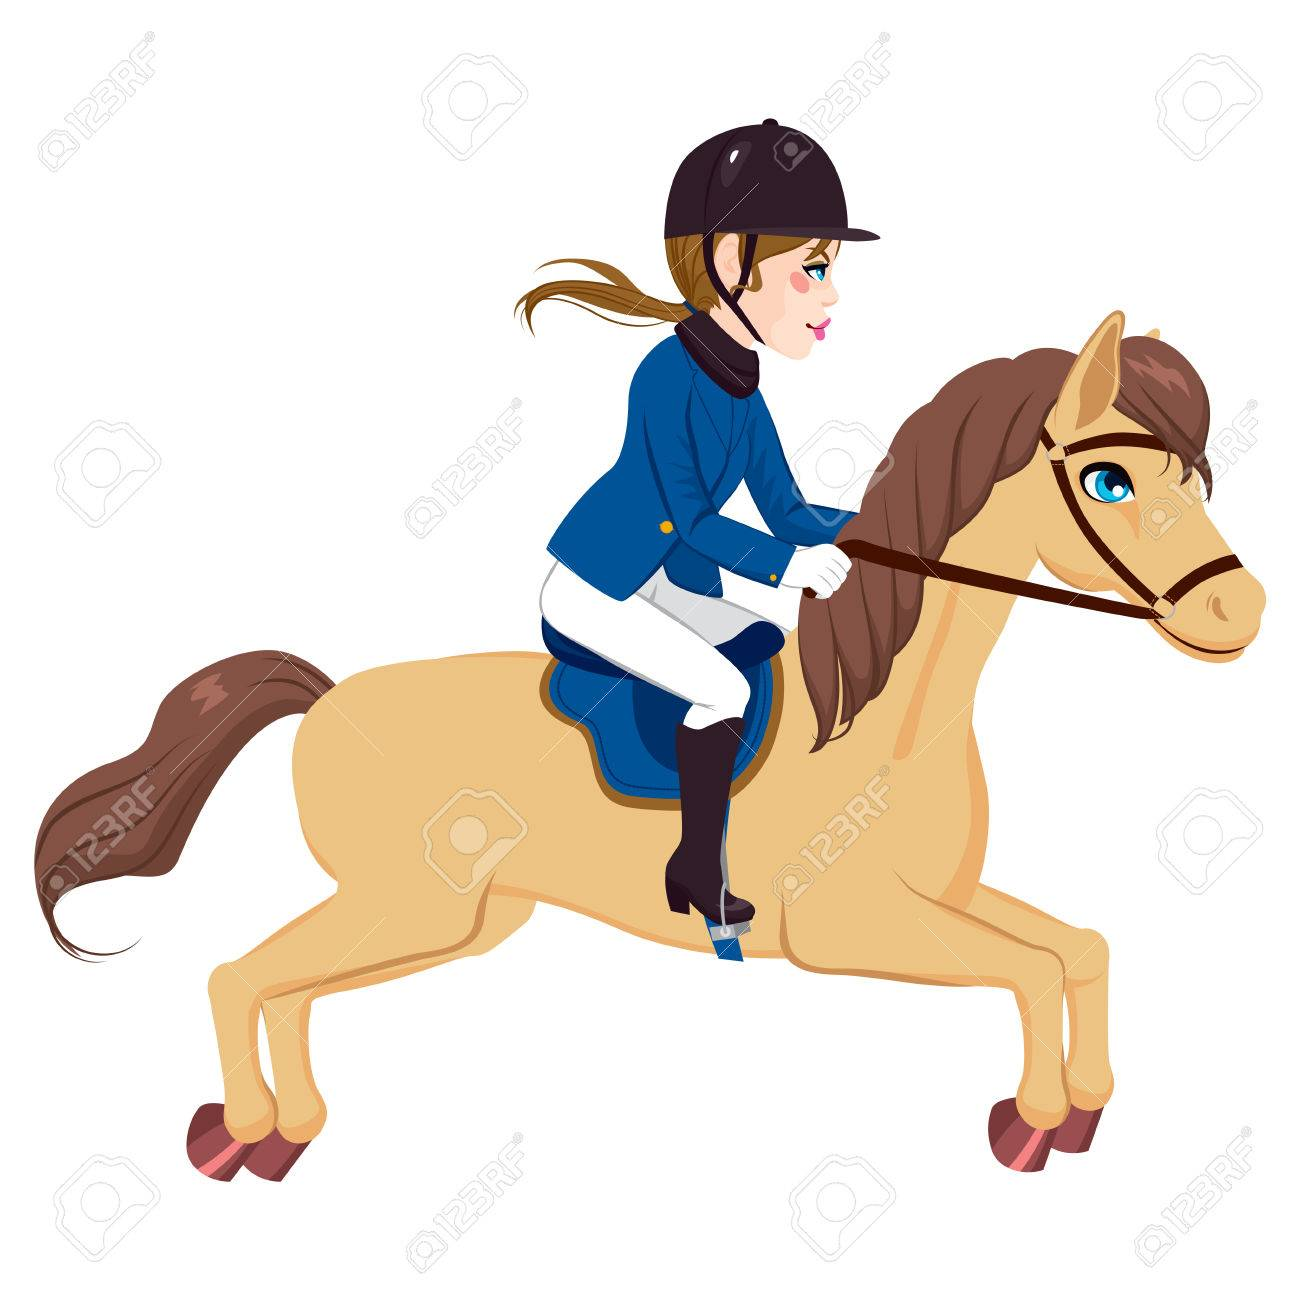 Beautiful equestrian woman riding and running with horse - 48346220